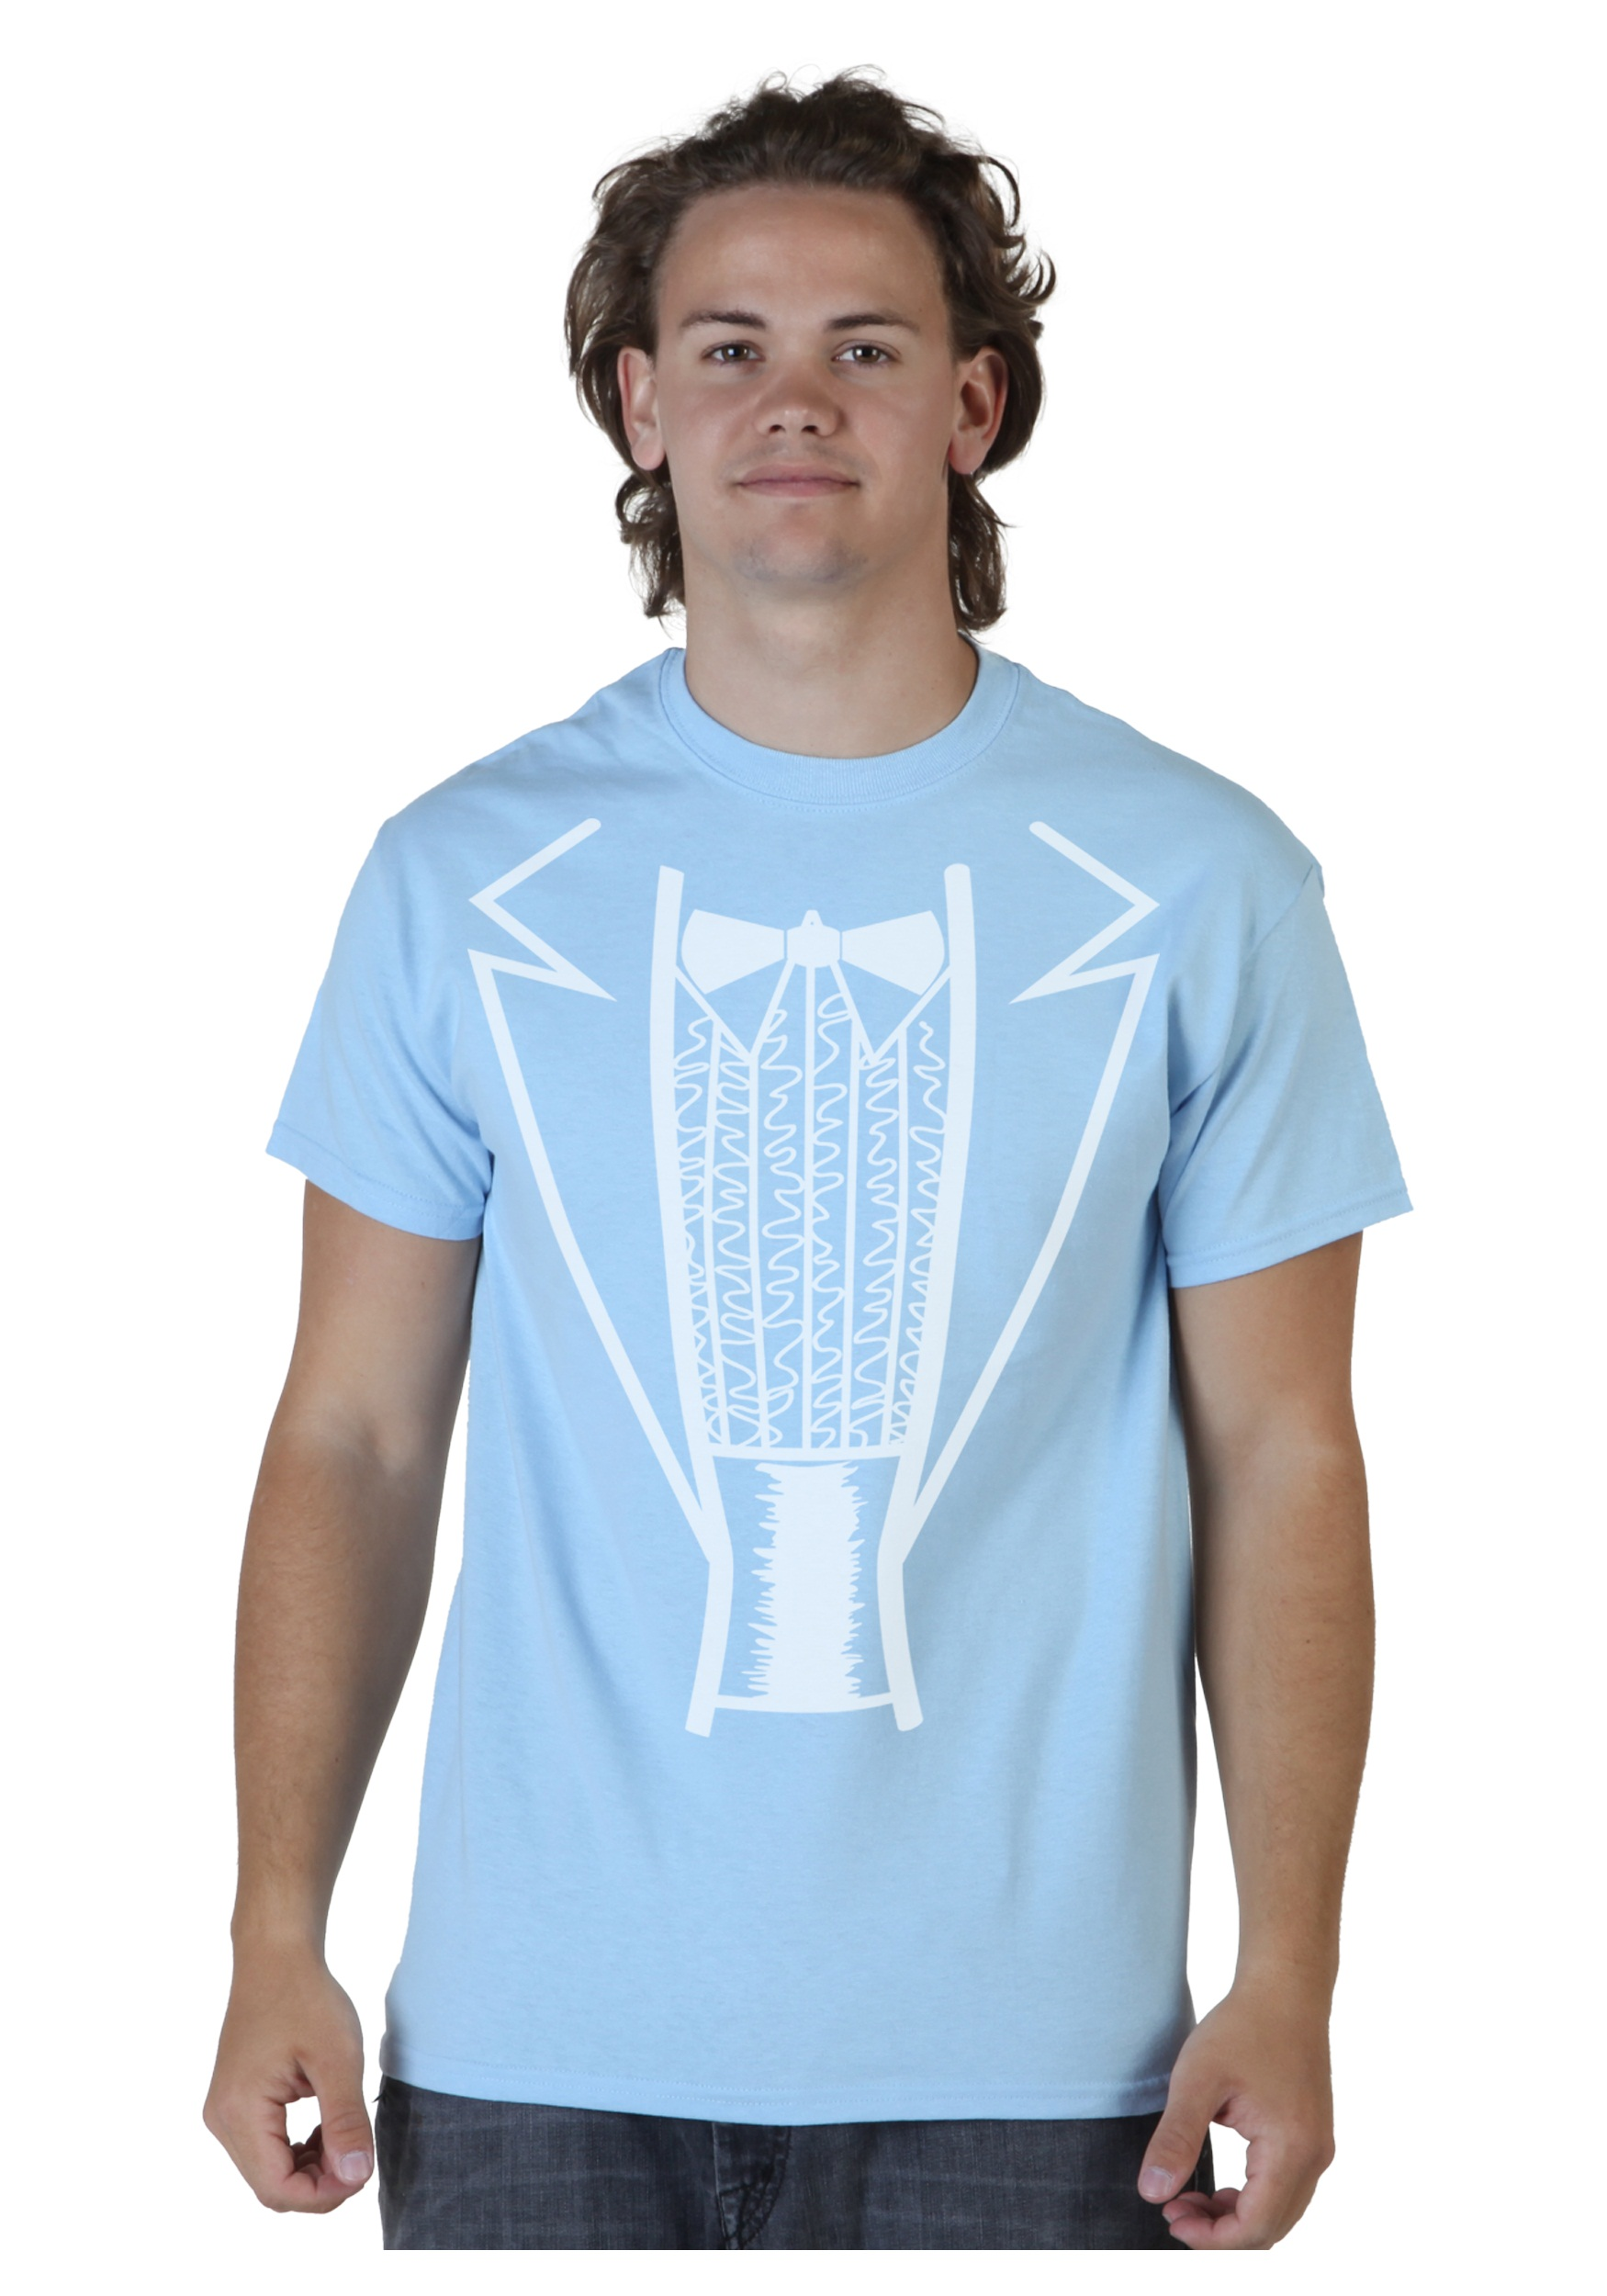 Blue Tuxedo Costume T-Shirt. Product Description. Get a funny look inspired ...